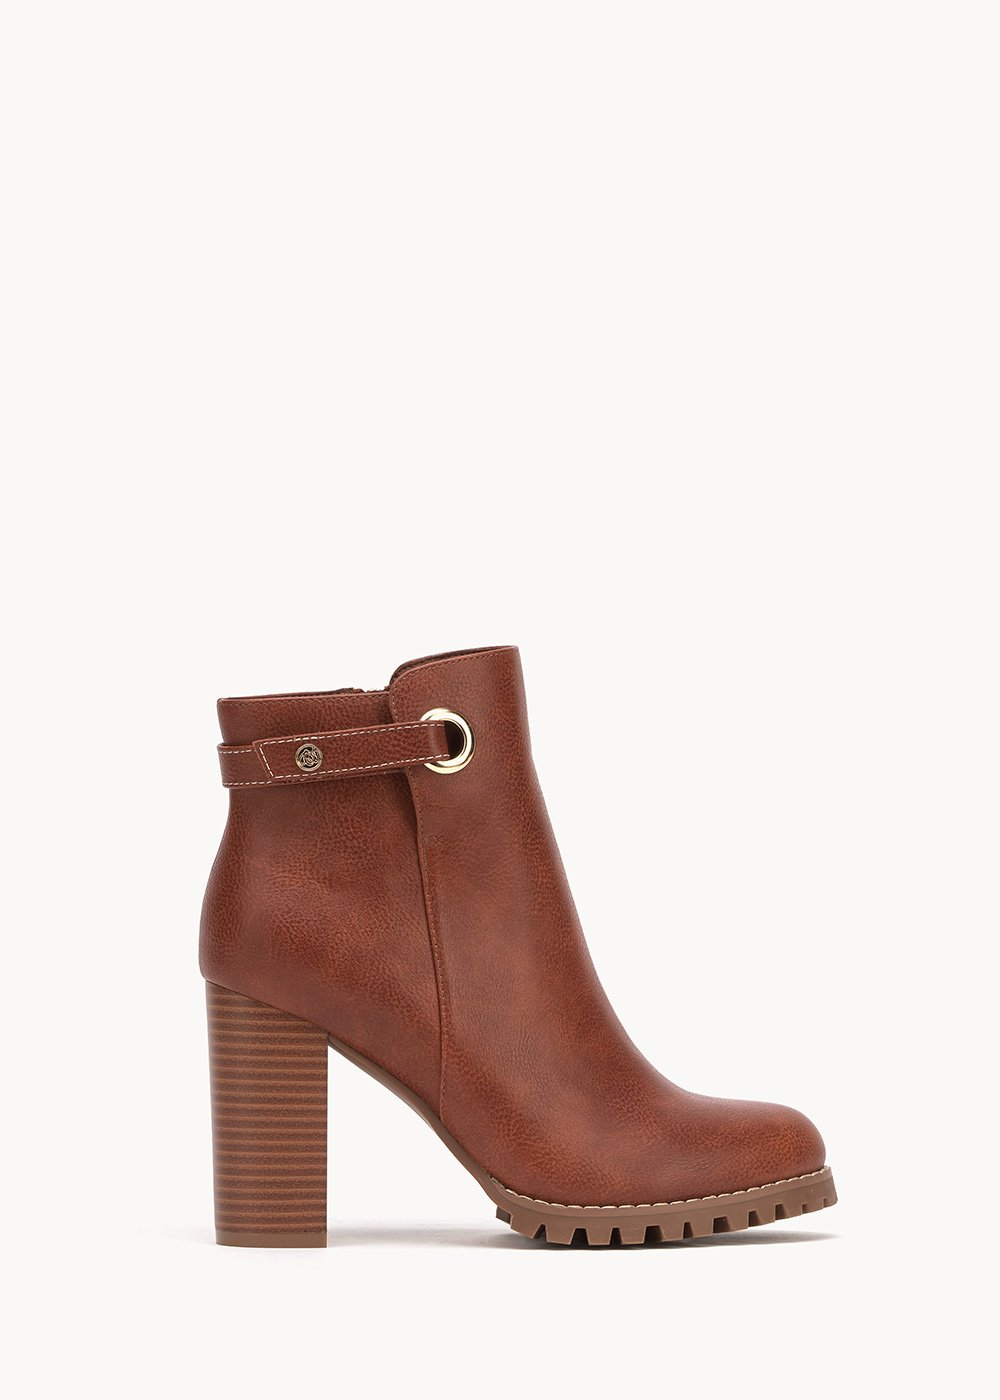 Sissy faux-leather ankle boots - Coccio - Woman